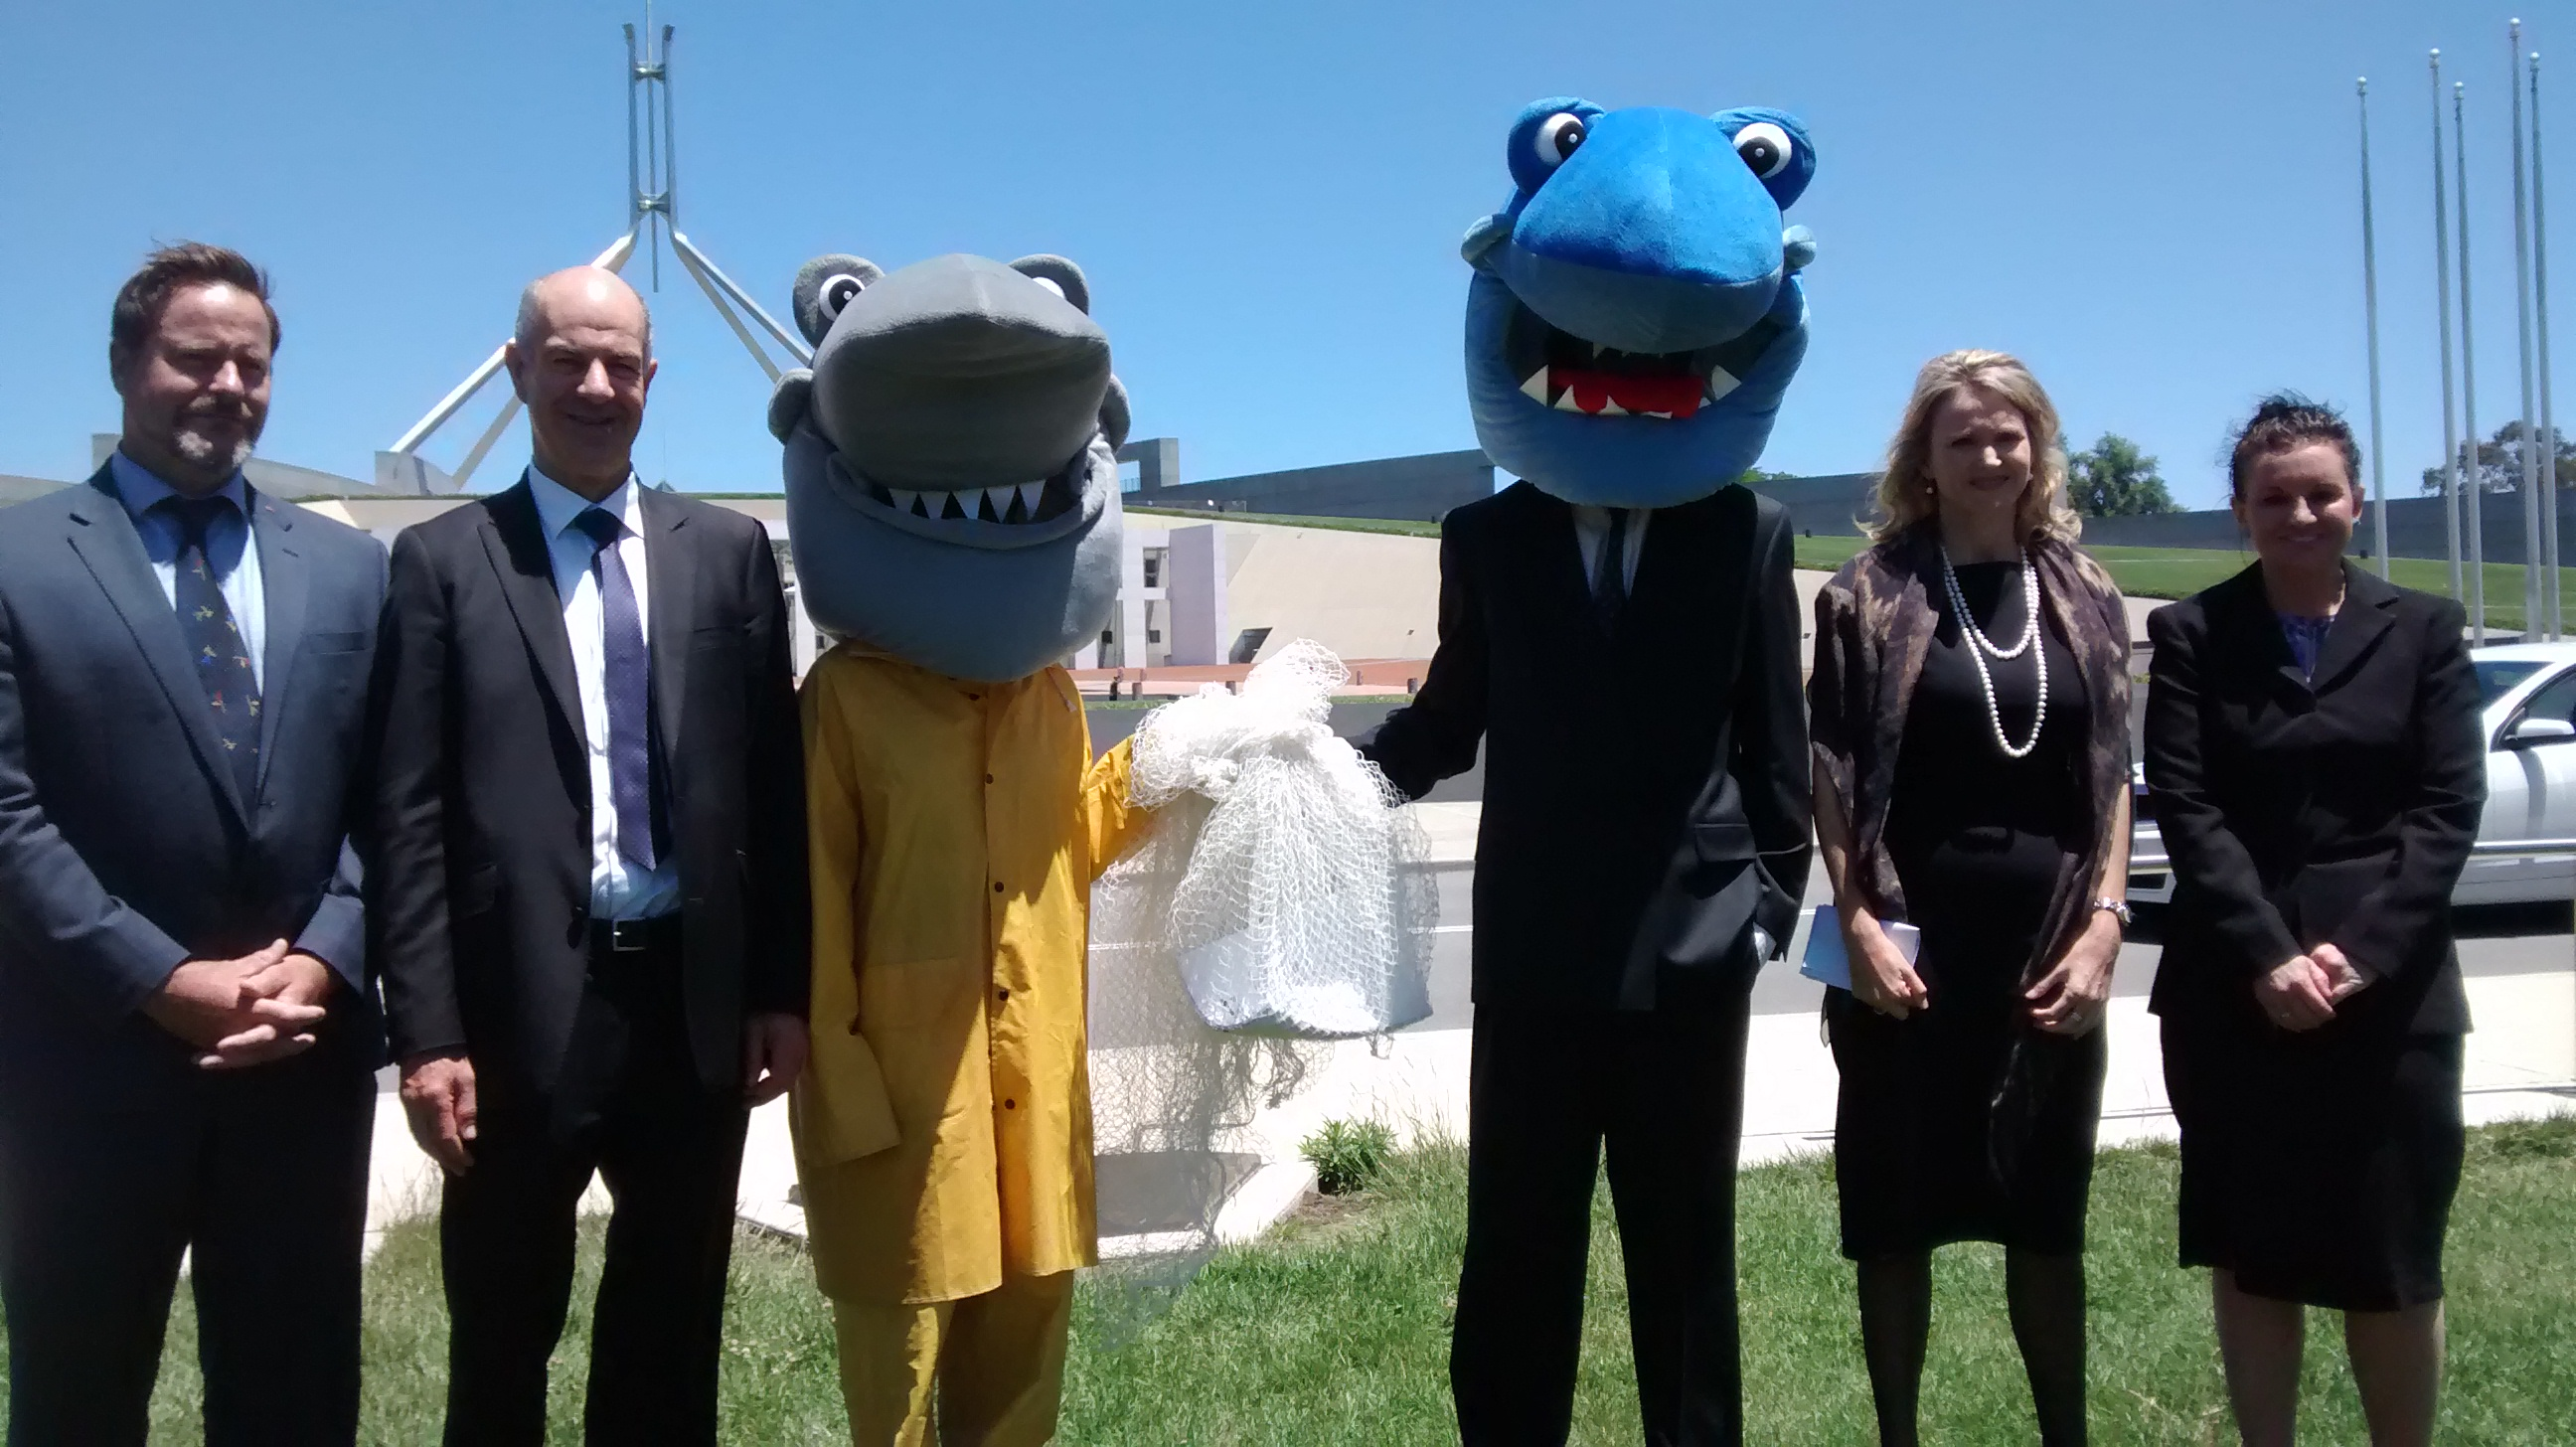 Sharks_Pollies_and_petitioners.jpg